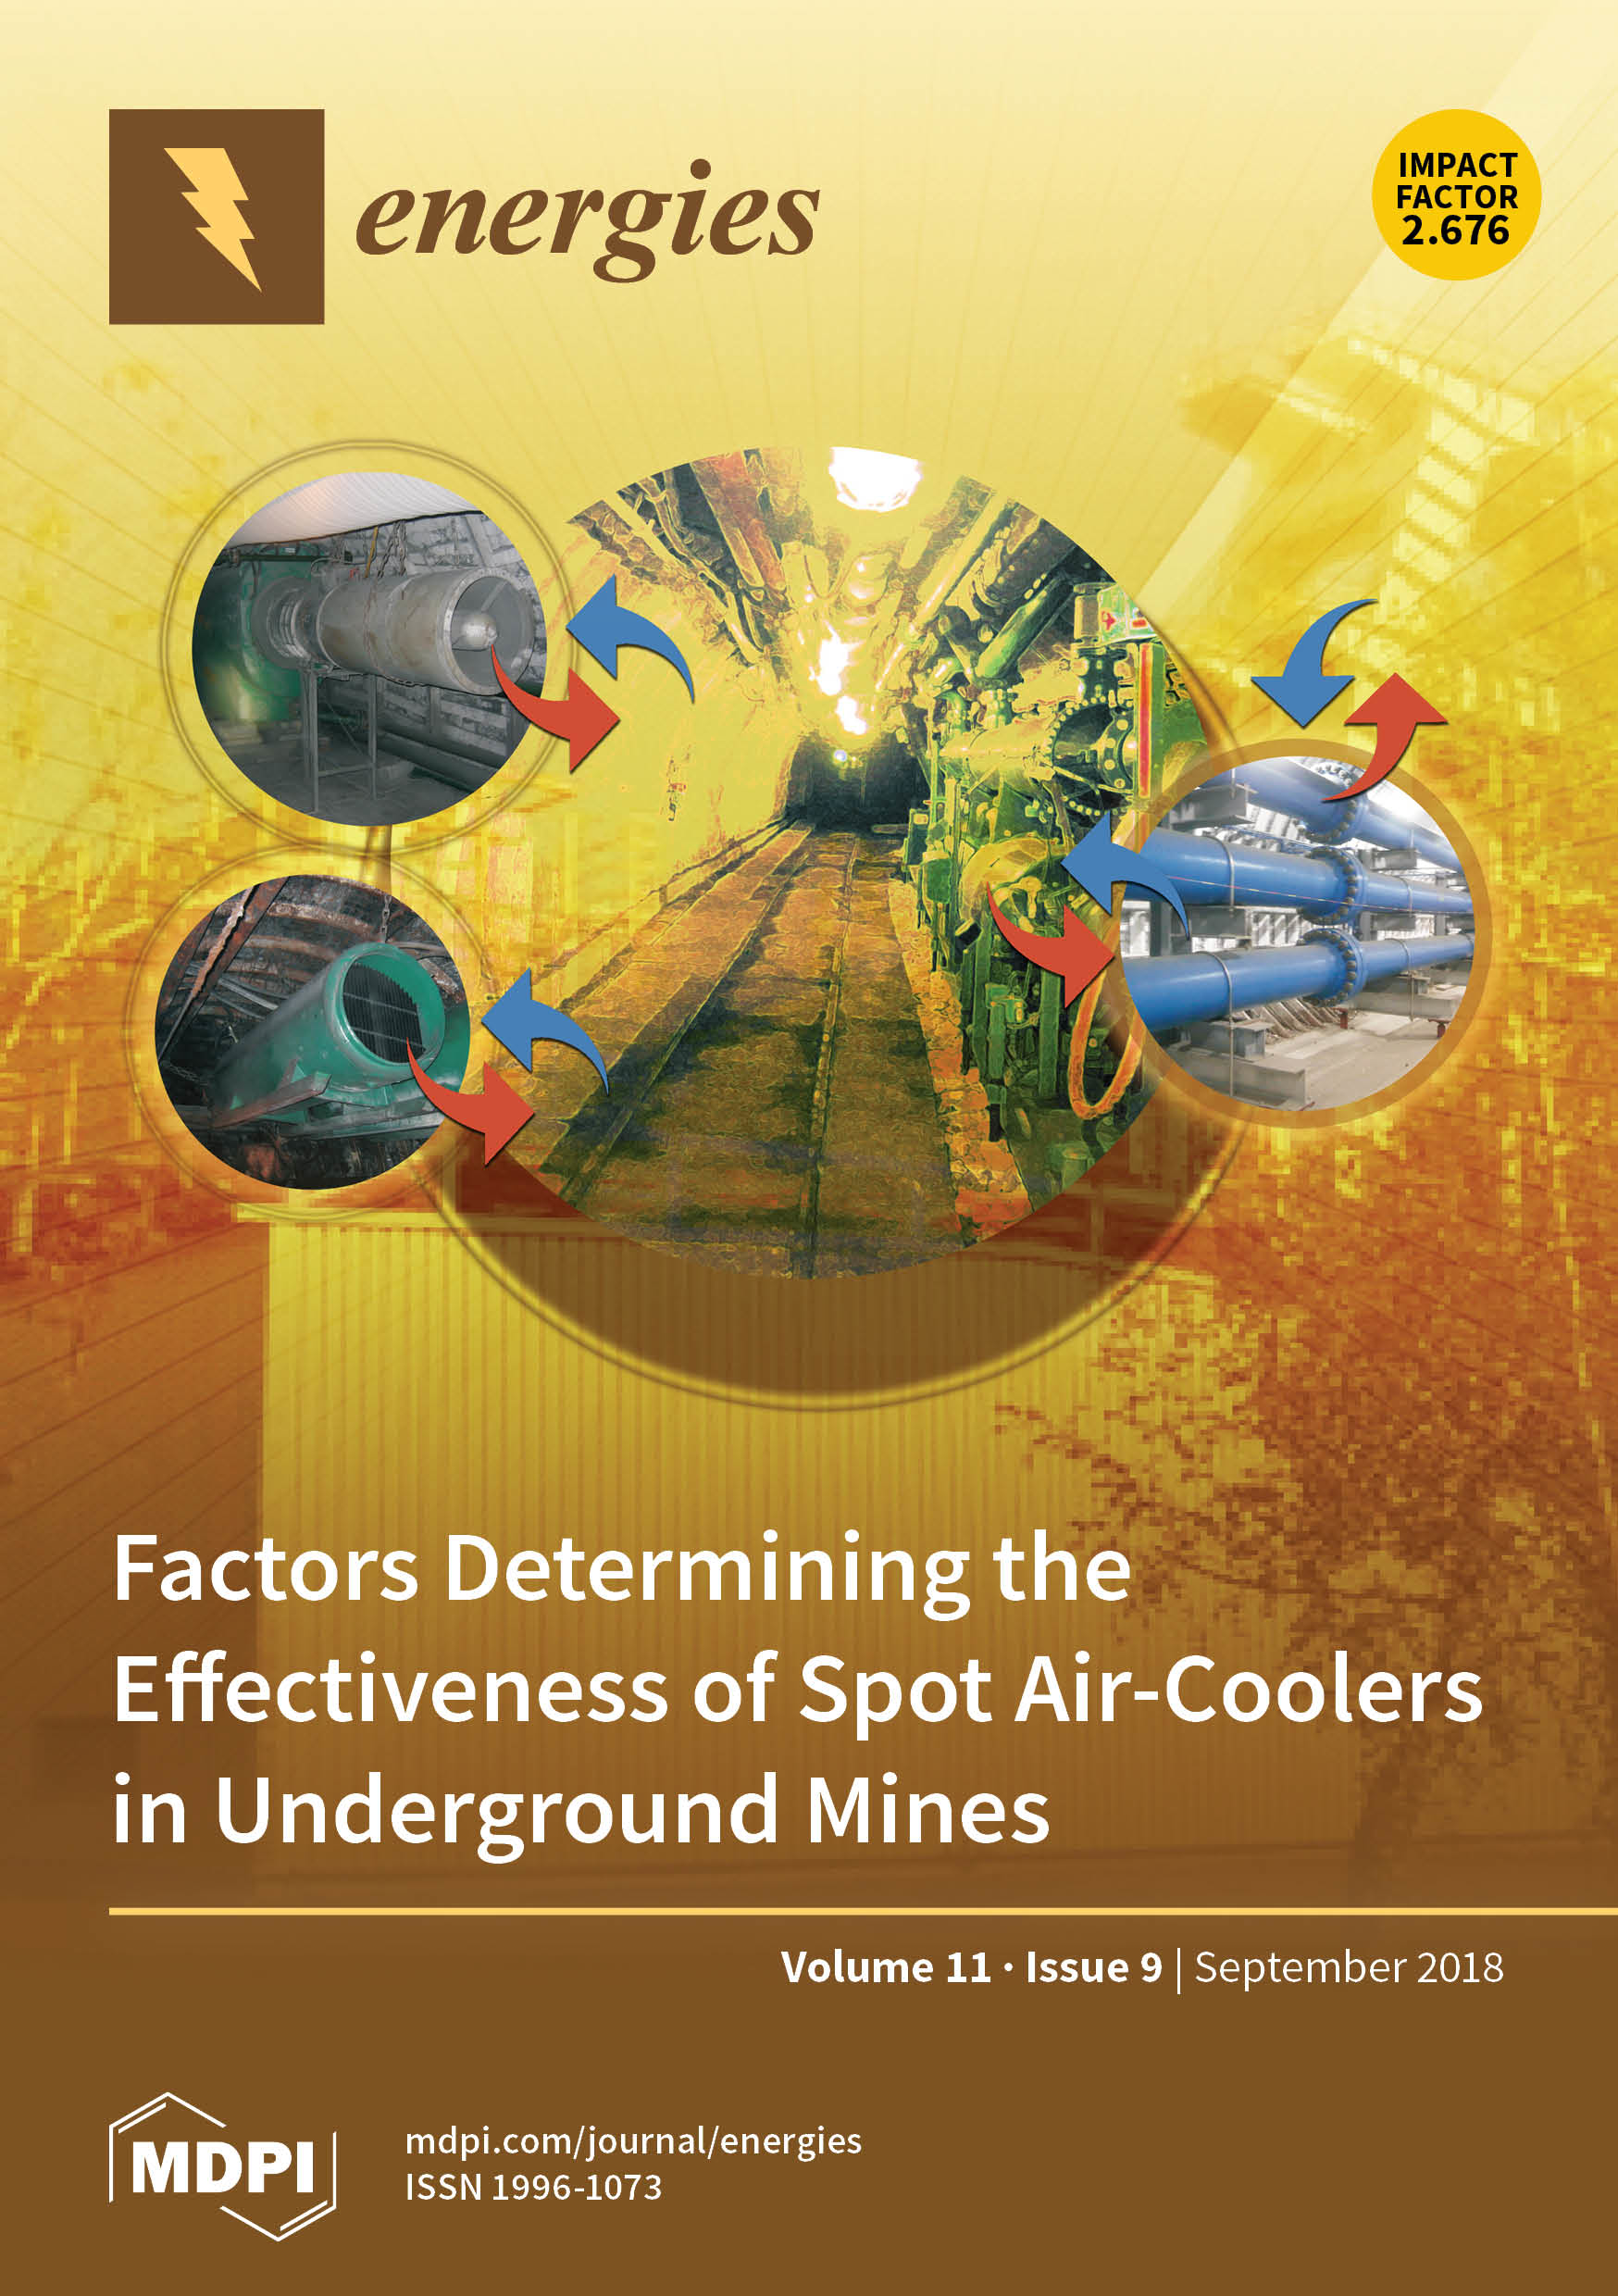 Energies September 2018 Browse Articles Residential Electrical Wiring Diagrams Price Usd 1000 Minorder 500 The Article Investigates Performance Of Cooling Systems In Polish Hard Coal Mining Industry